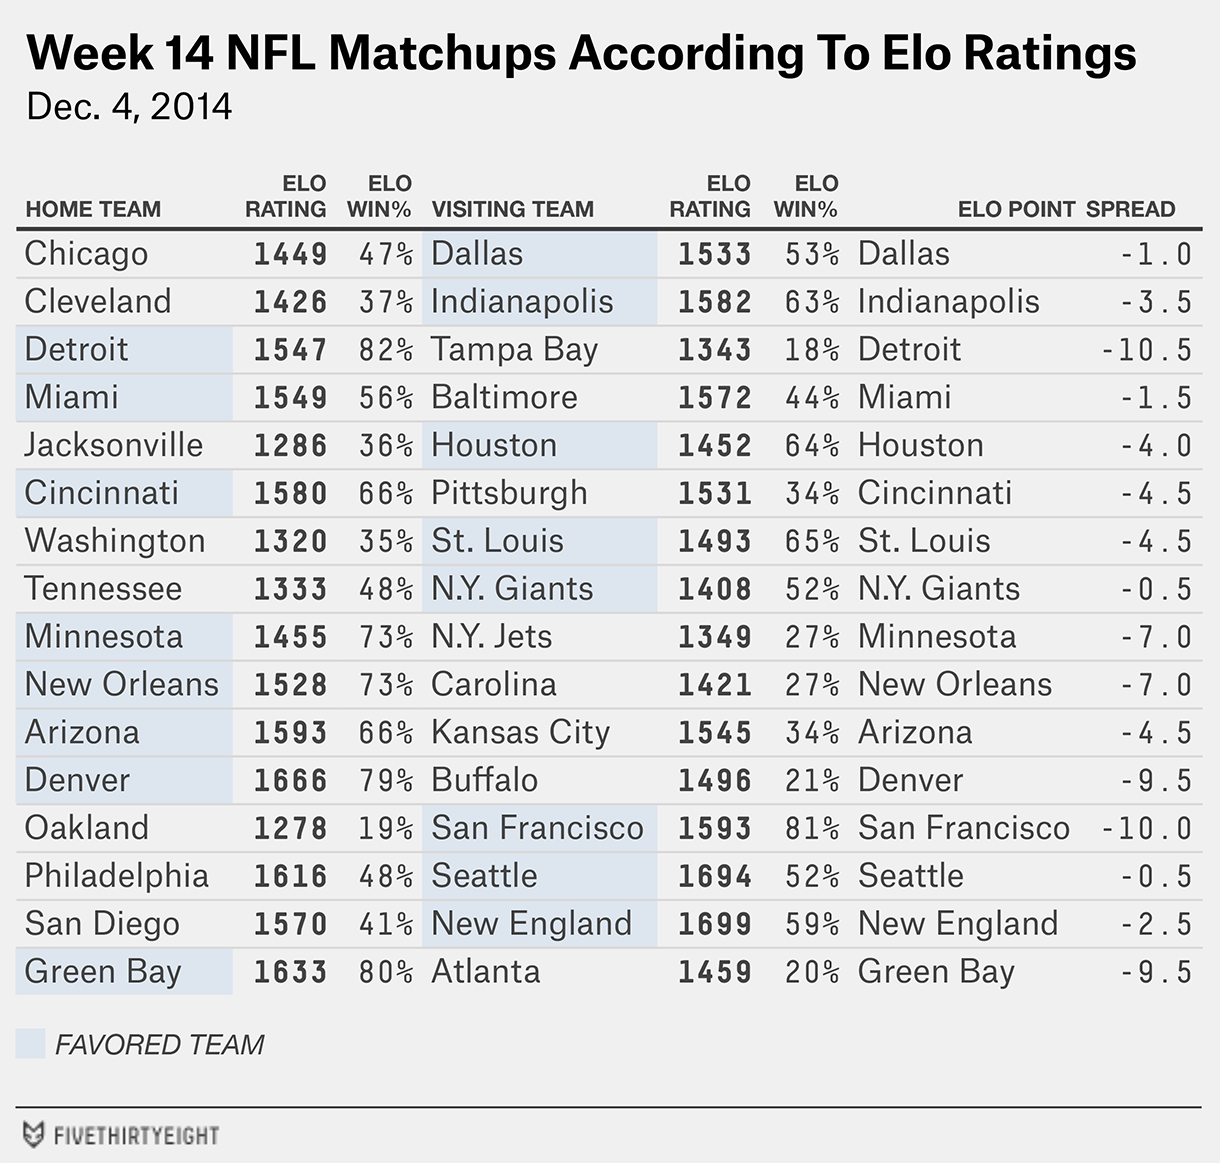 nfl-eloratings-week14-table3